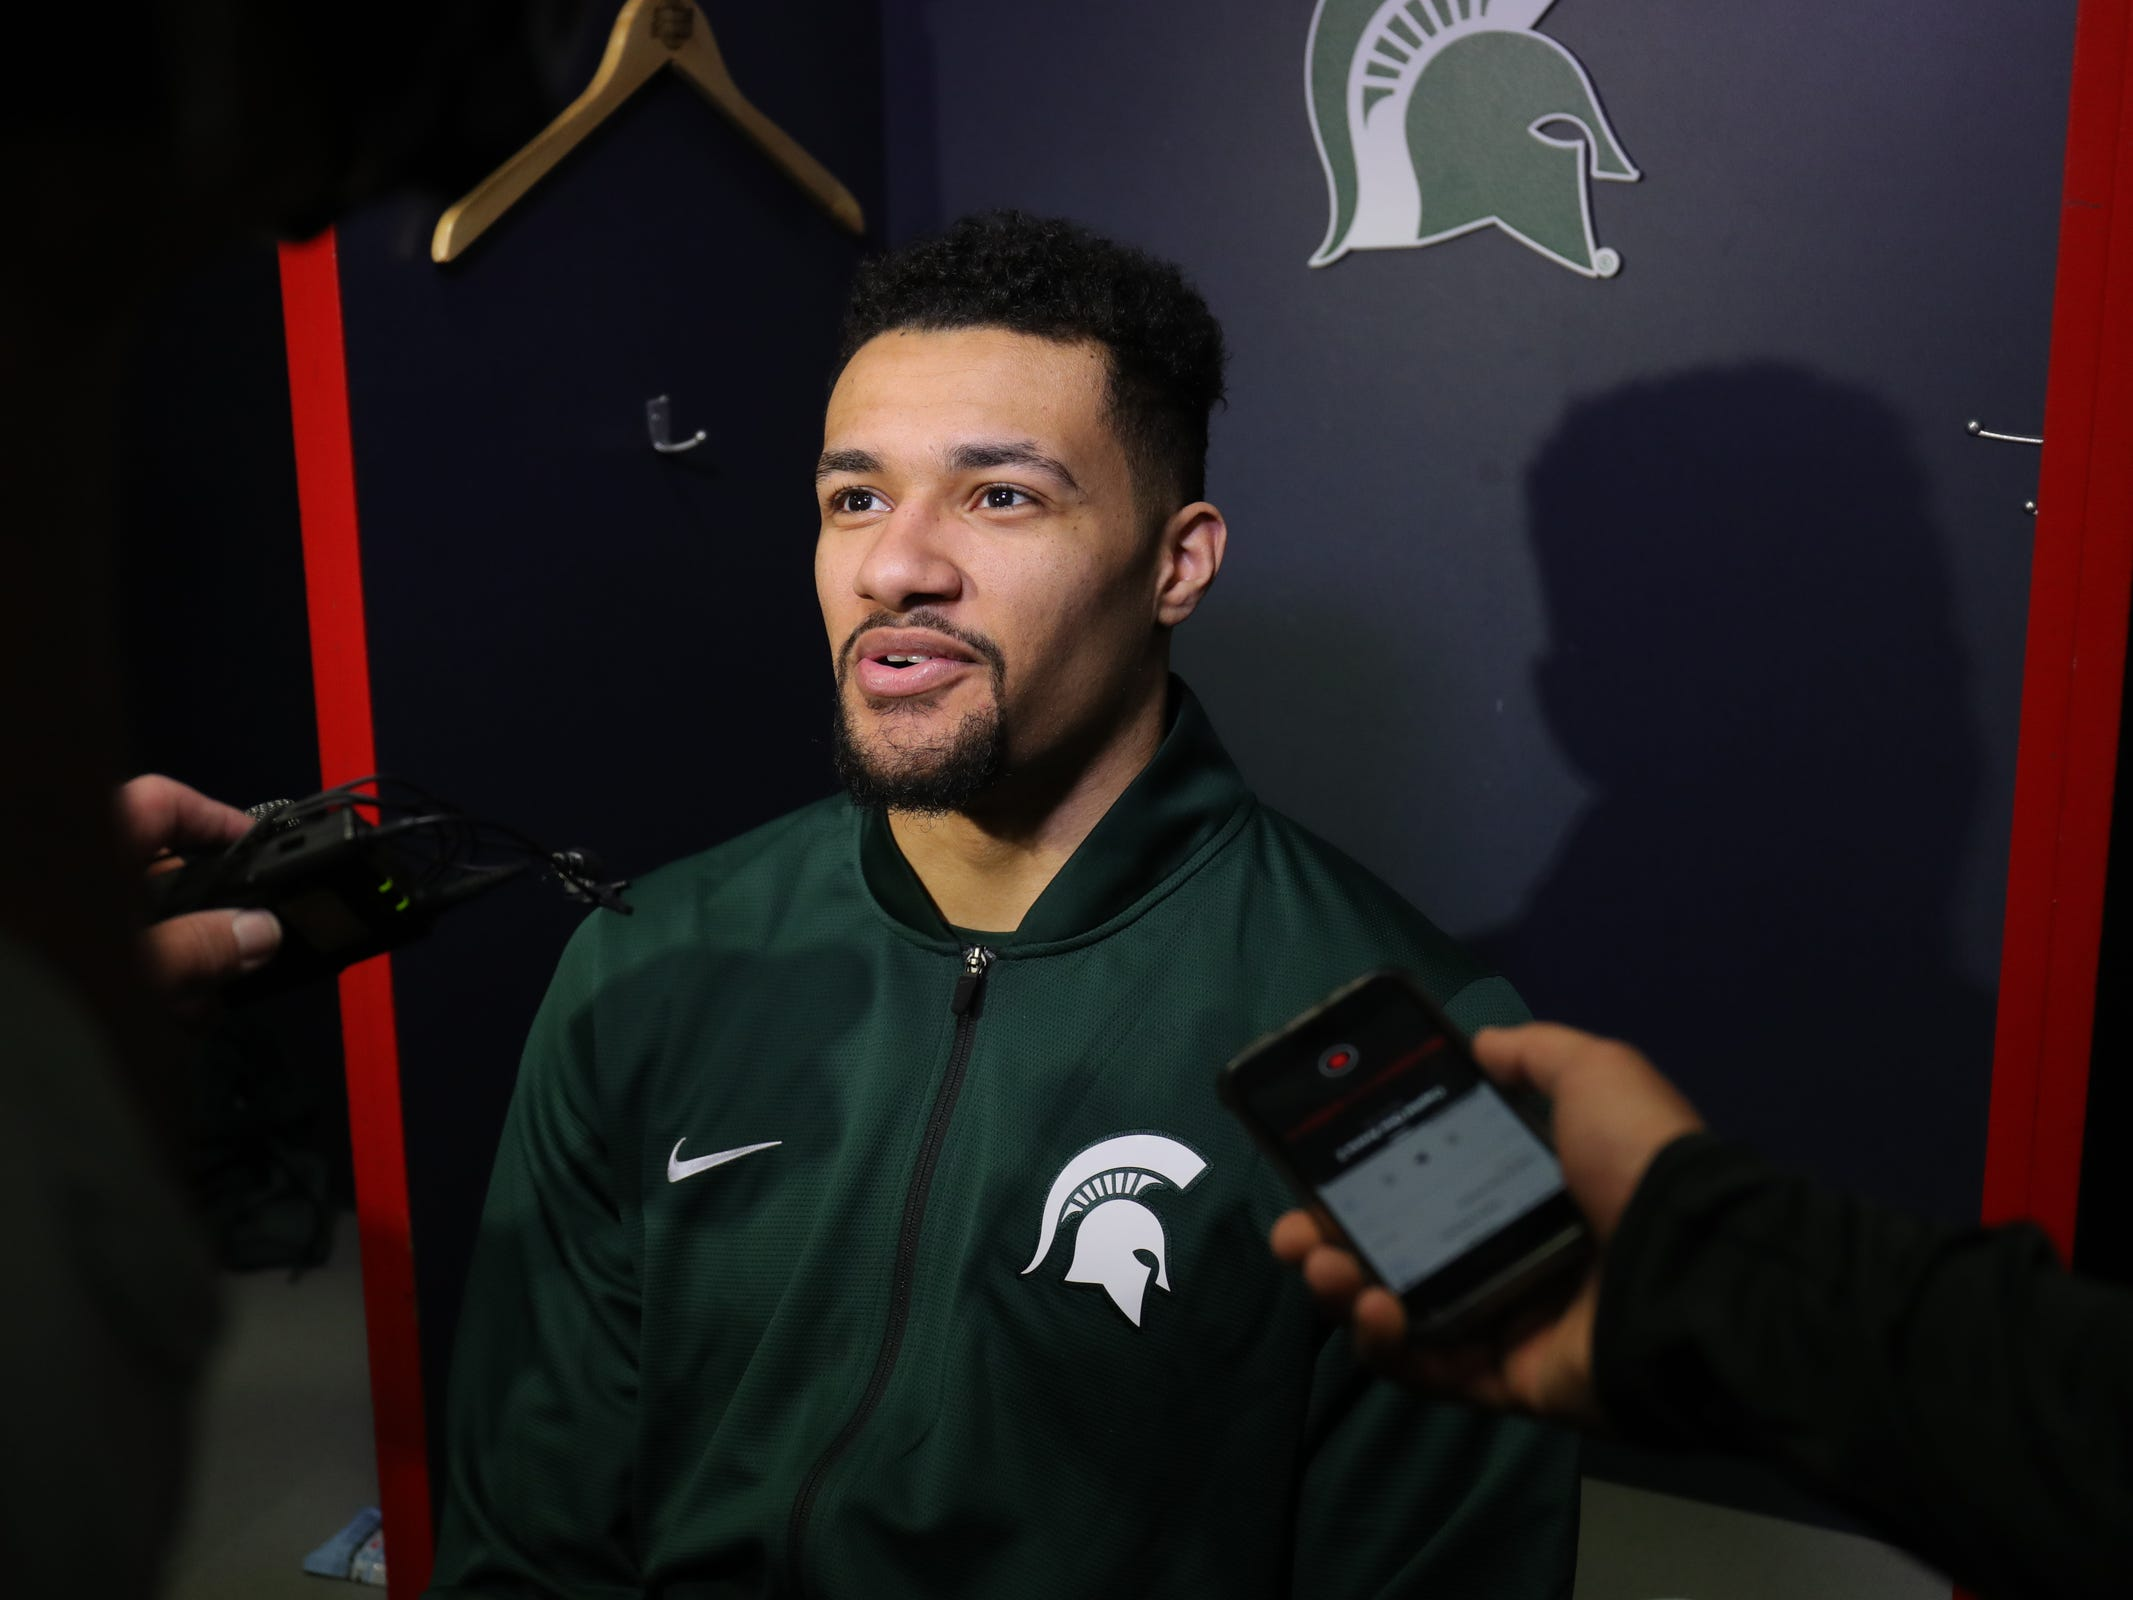 Michigan State forward Kenny Goins talks with reporters about their Sweet 16 game against LSU, Thursday, March 28, 2019 at the Capital One Arena in Washington, D.C.